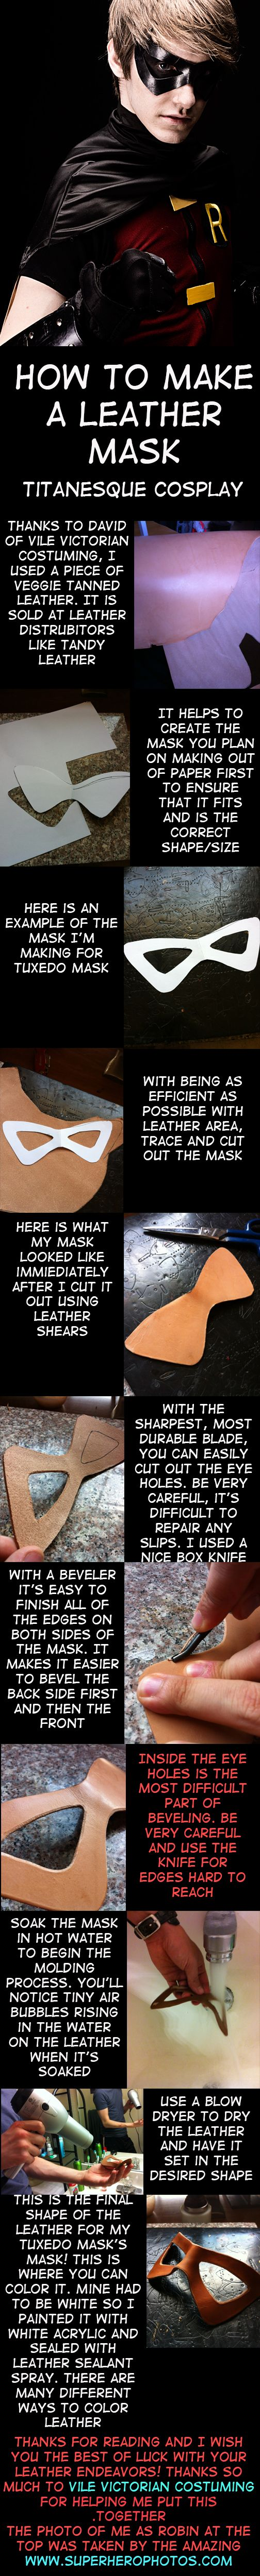 Leather Mask Tutorial by TitanesqueCosplay.deviantart.com on @deviantART. Maybe for a Bucky costume type of thing?